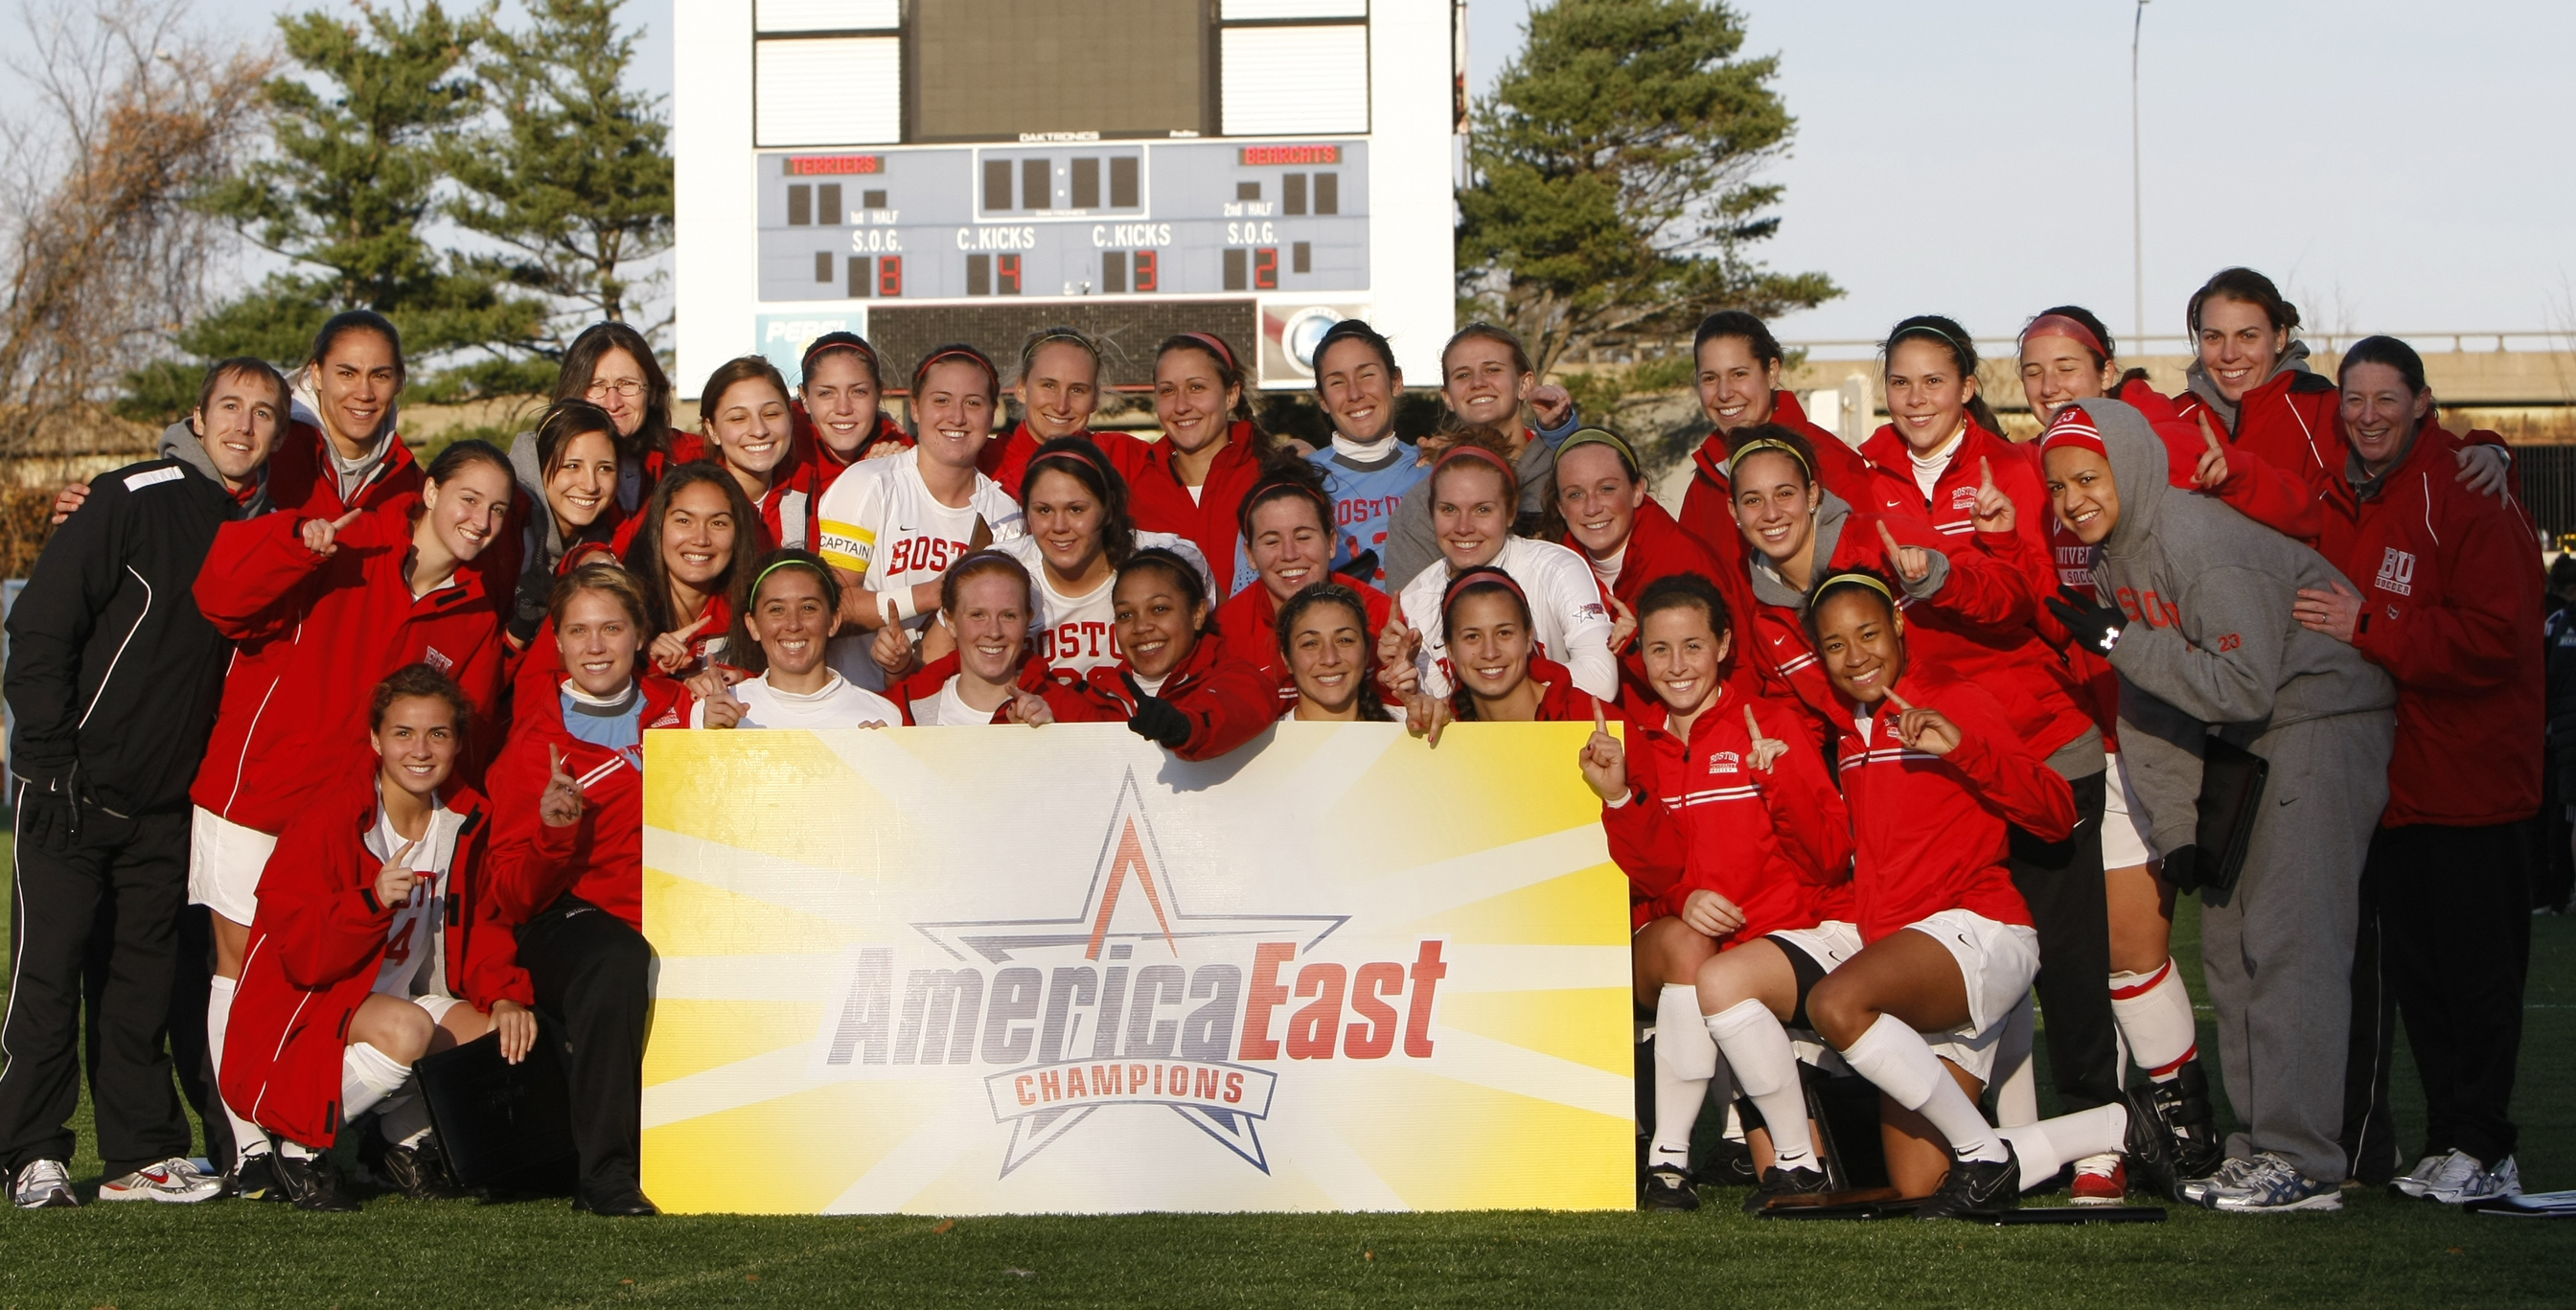 2009 Women's Soccer Champs